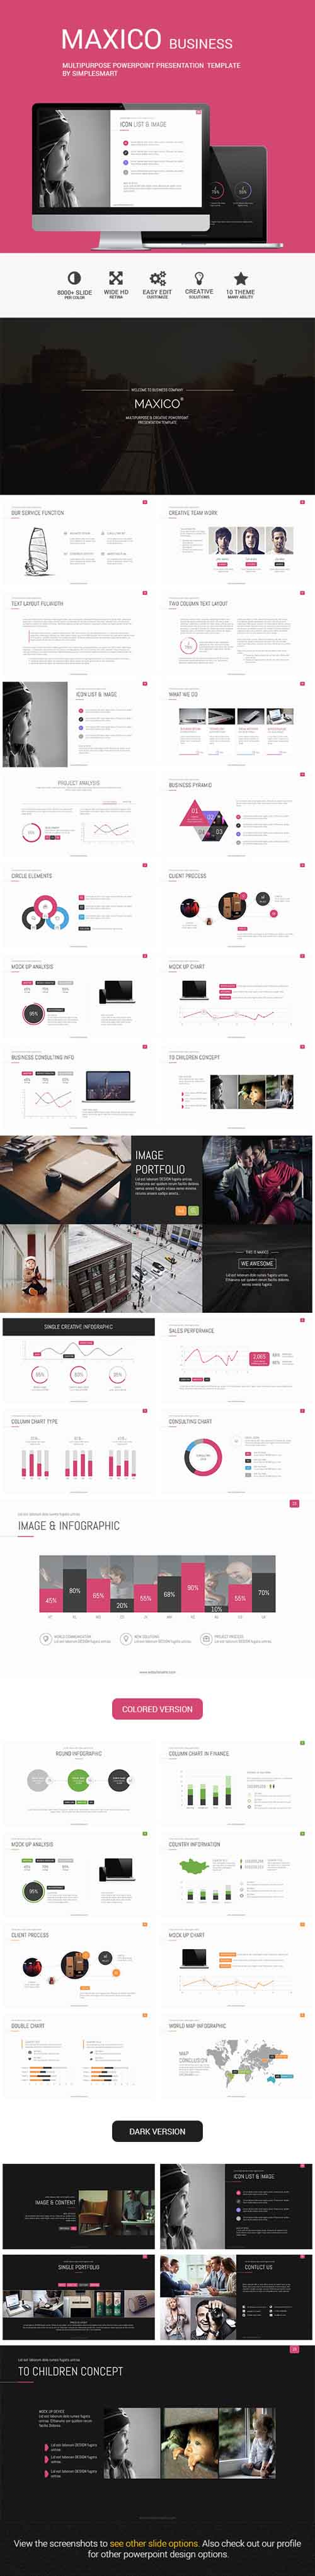 MAXICO - Multipurpose Presentation Template 8952716